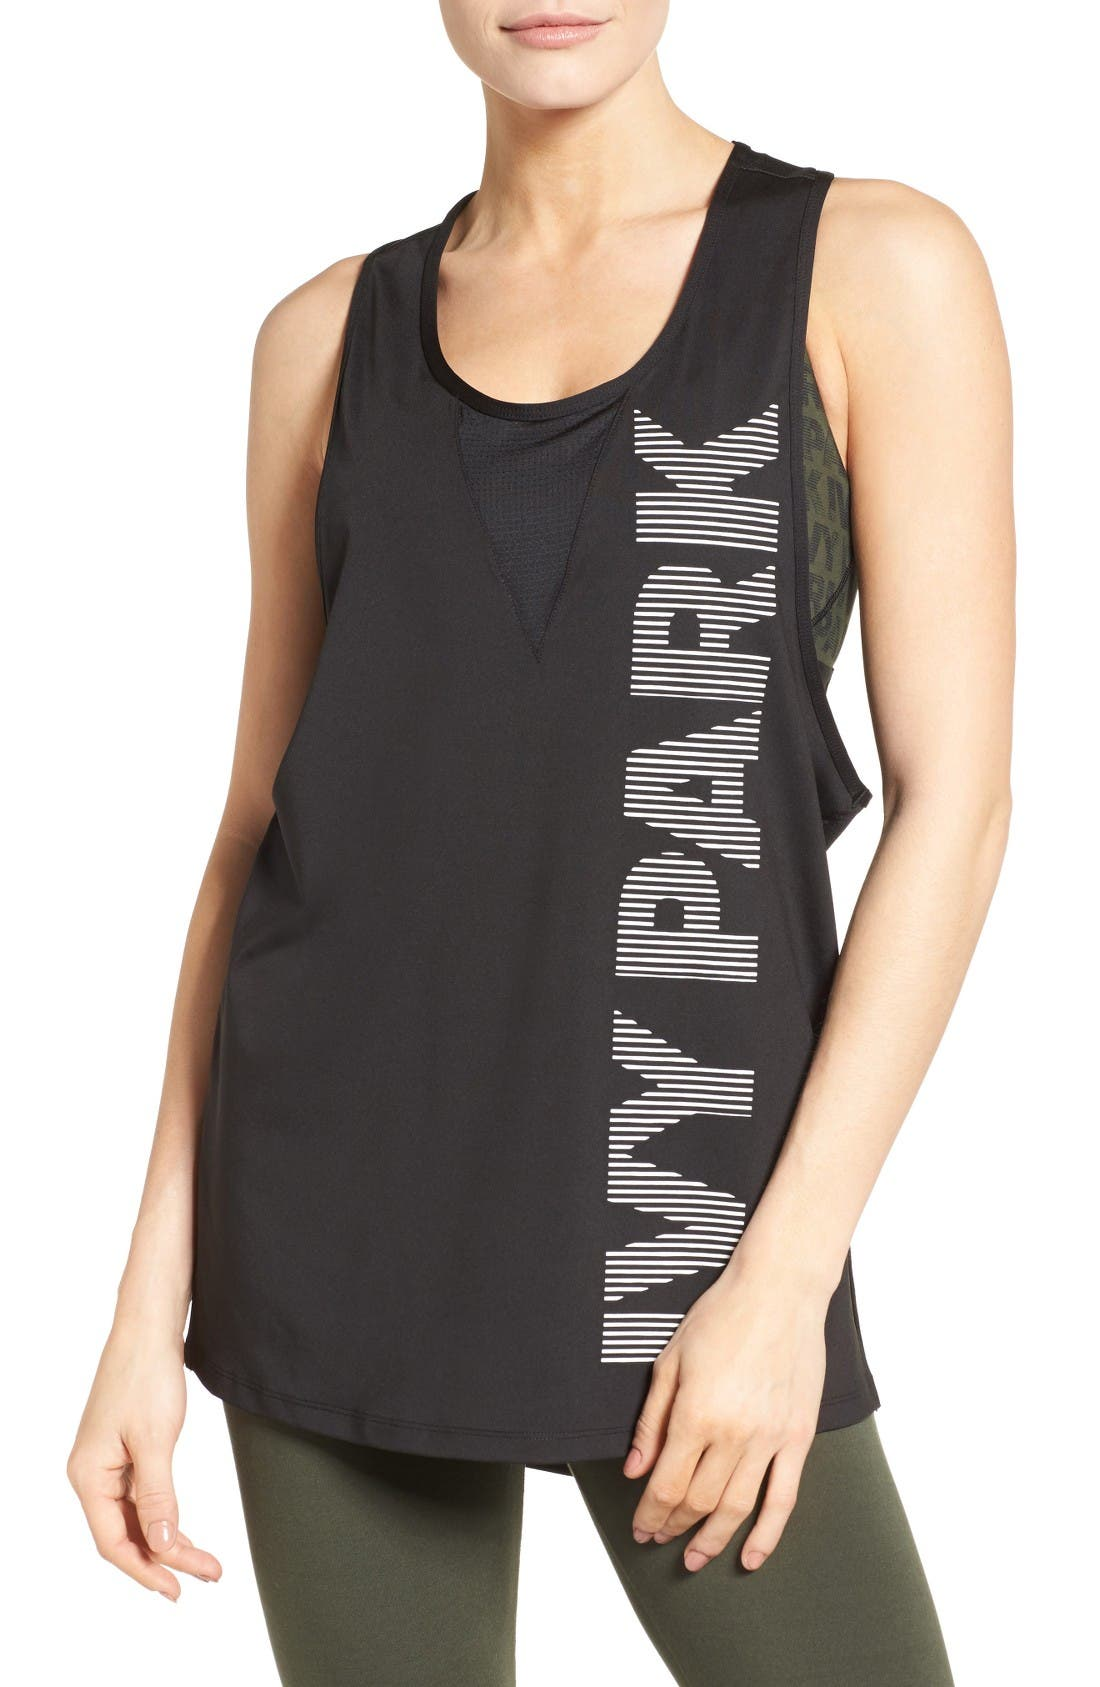 IVY PARK Silicone Logo Tank